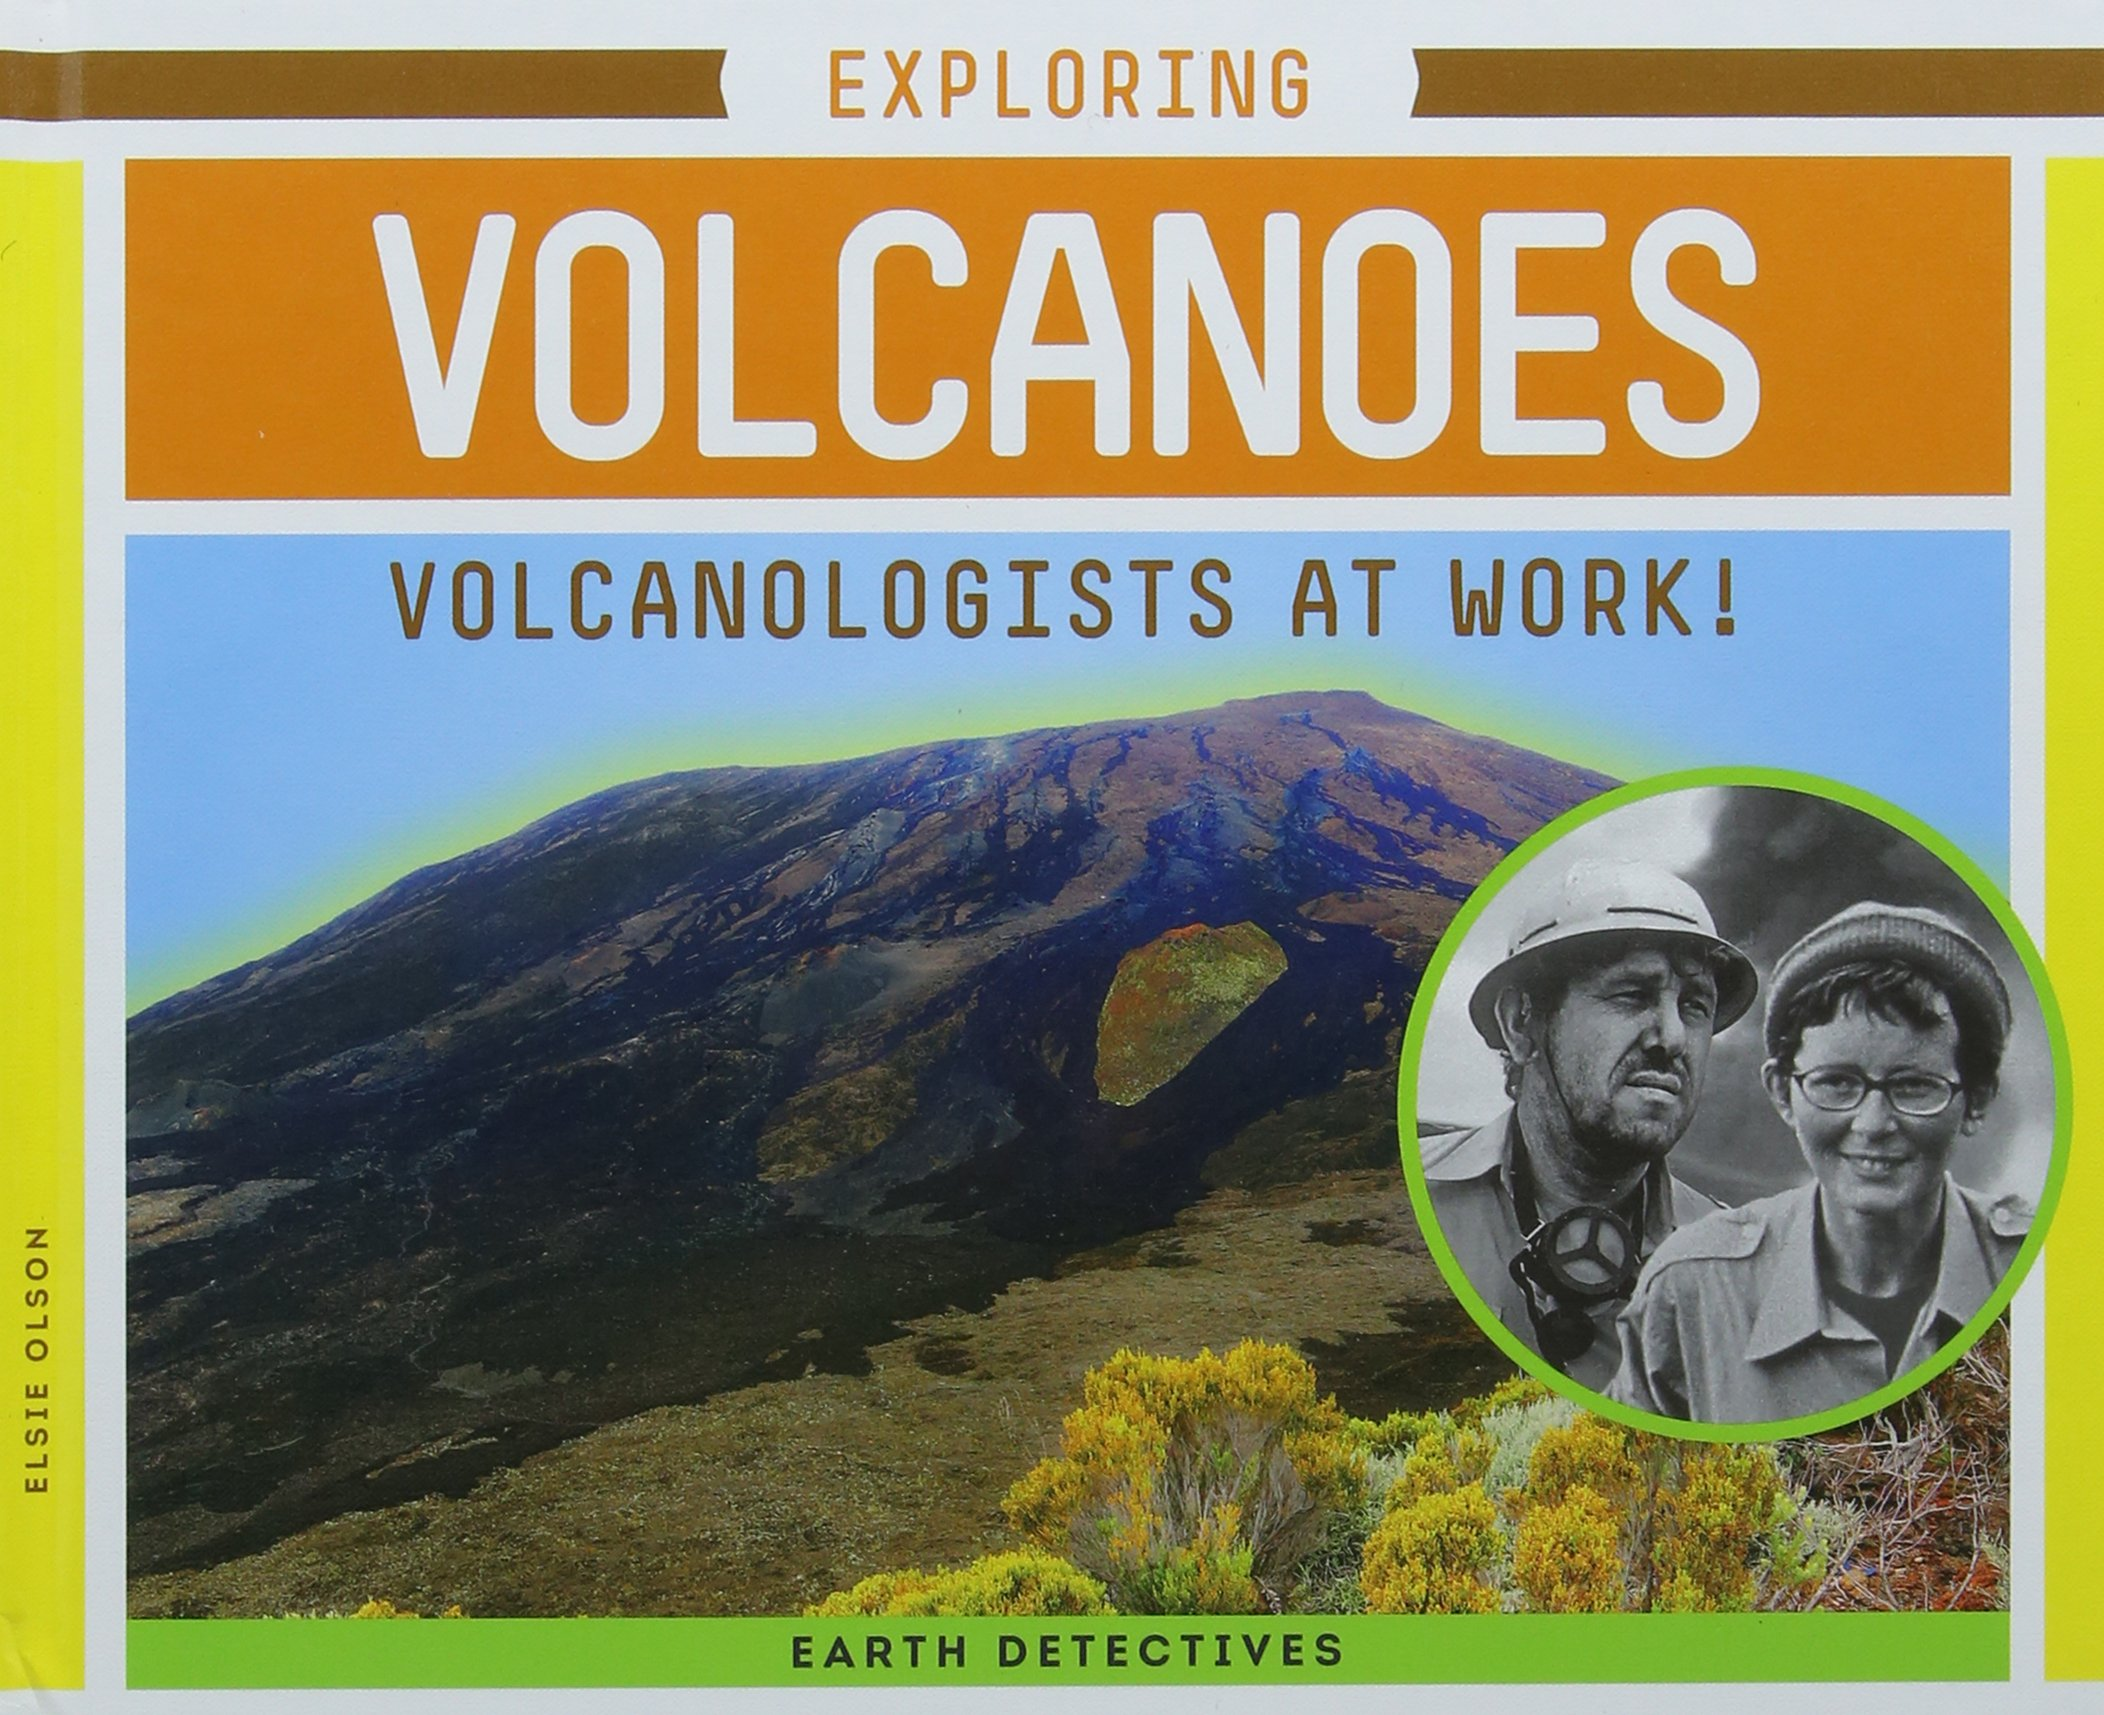 Exploring Volcanoes: Volcanologists at Work! (Earth Detectives)